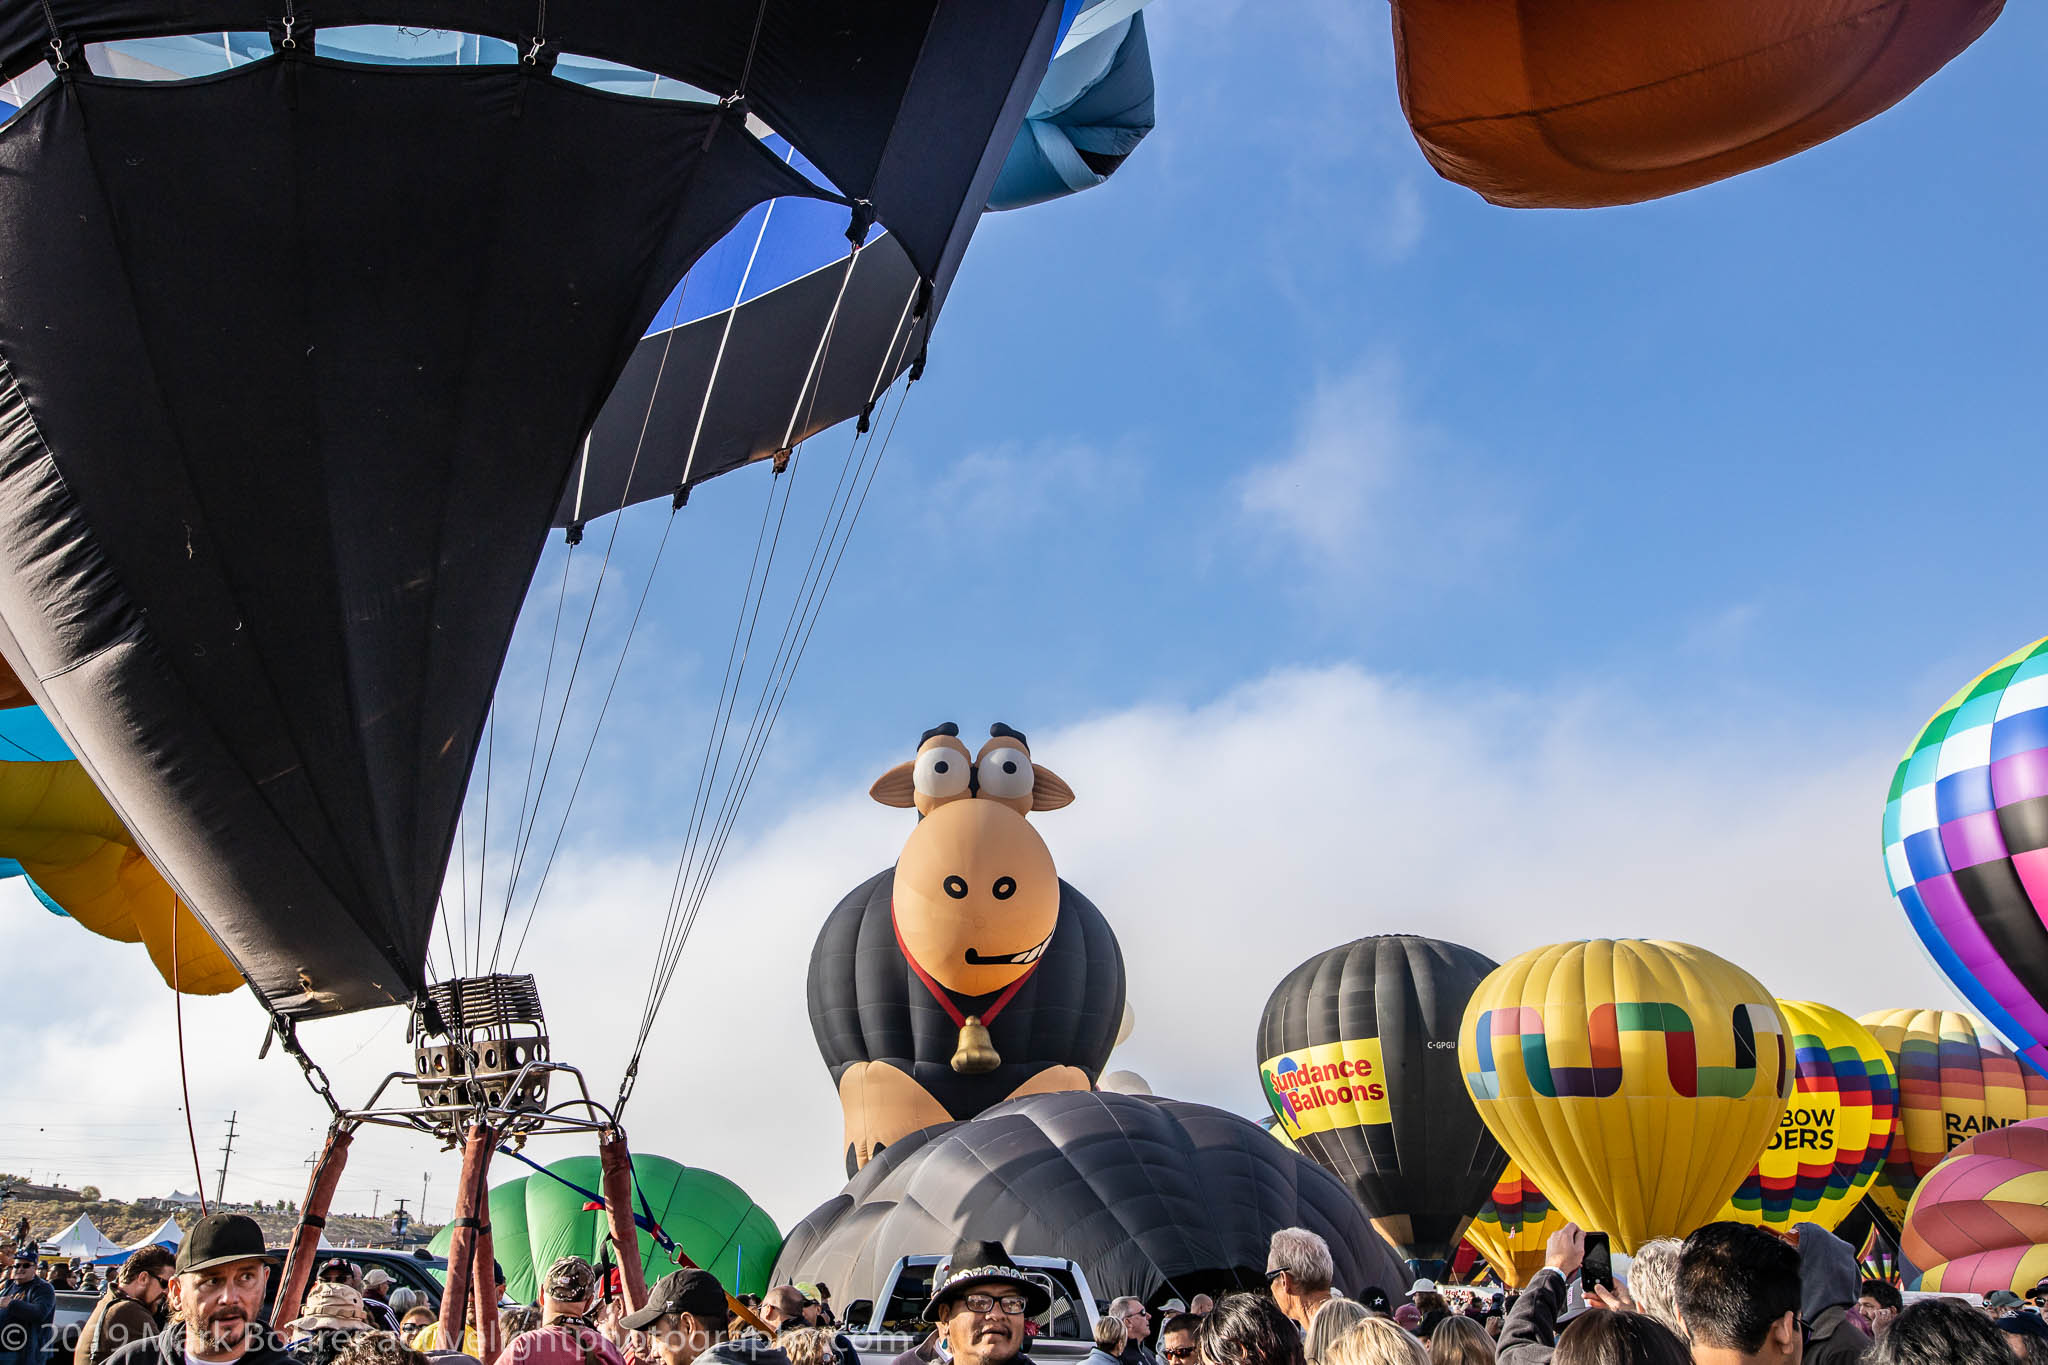 Don't have a cow, man - Albuquerque International Balloon Fiesta, Active Light Photography